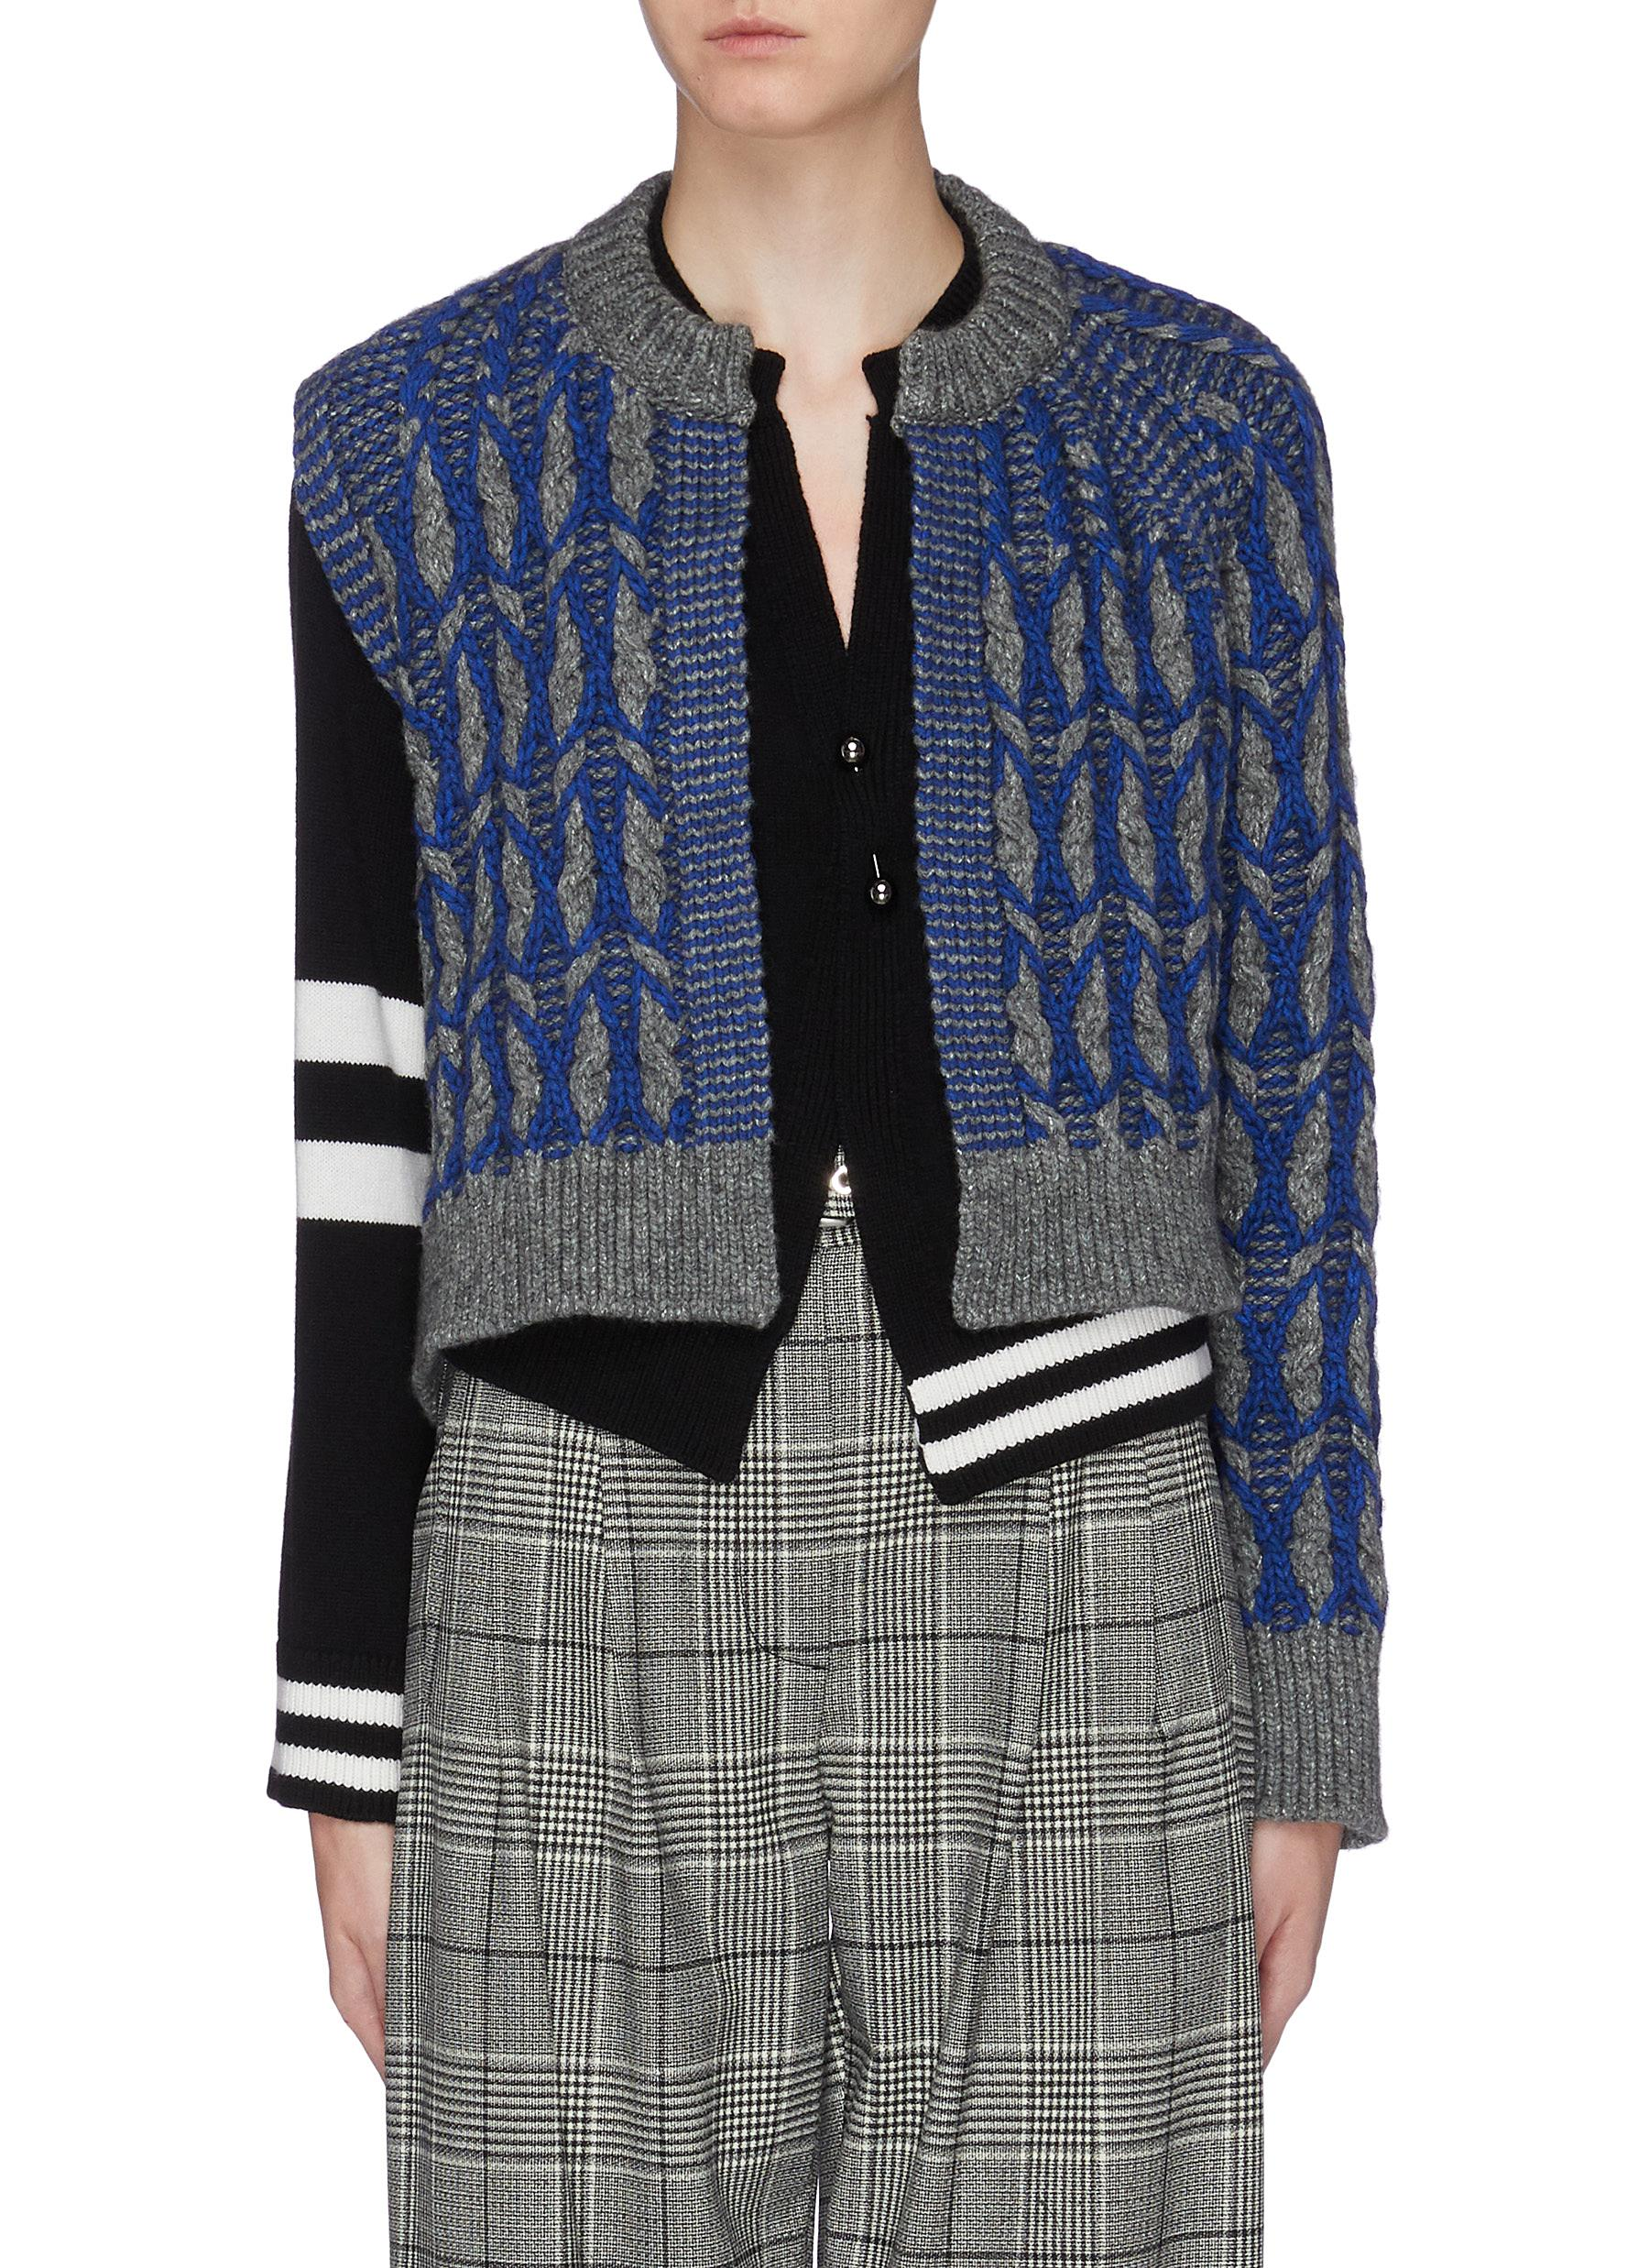 Asymmetric sleeve geometric intarsia cropped cardigan by Mrz